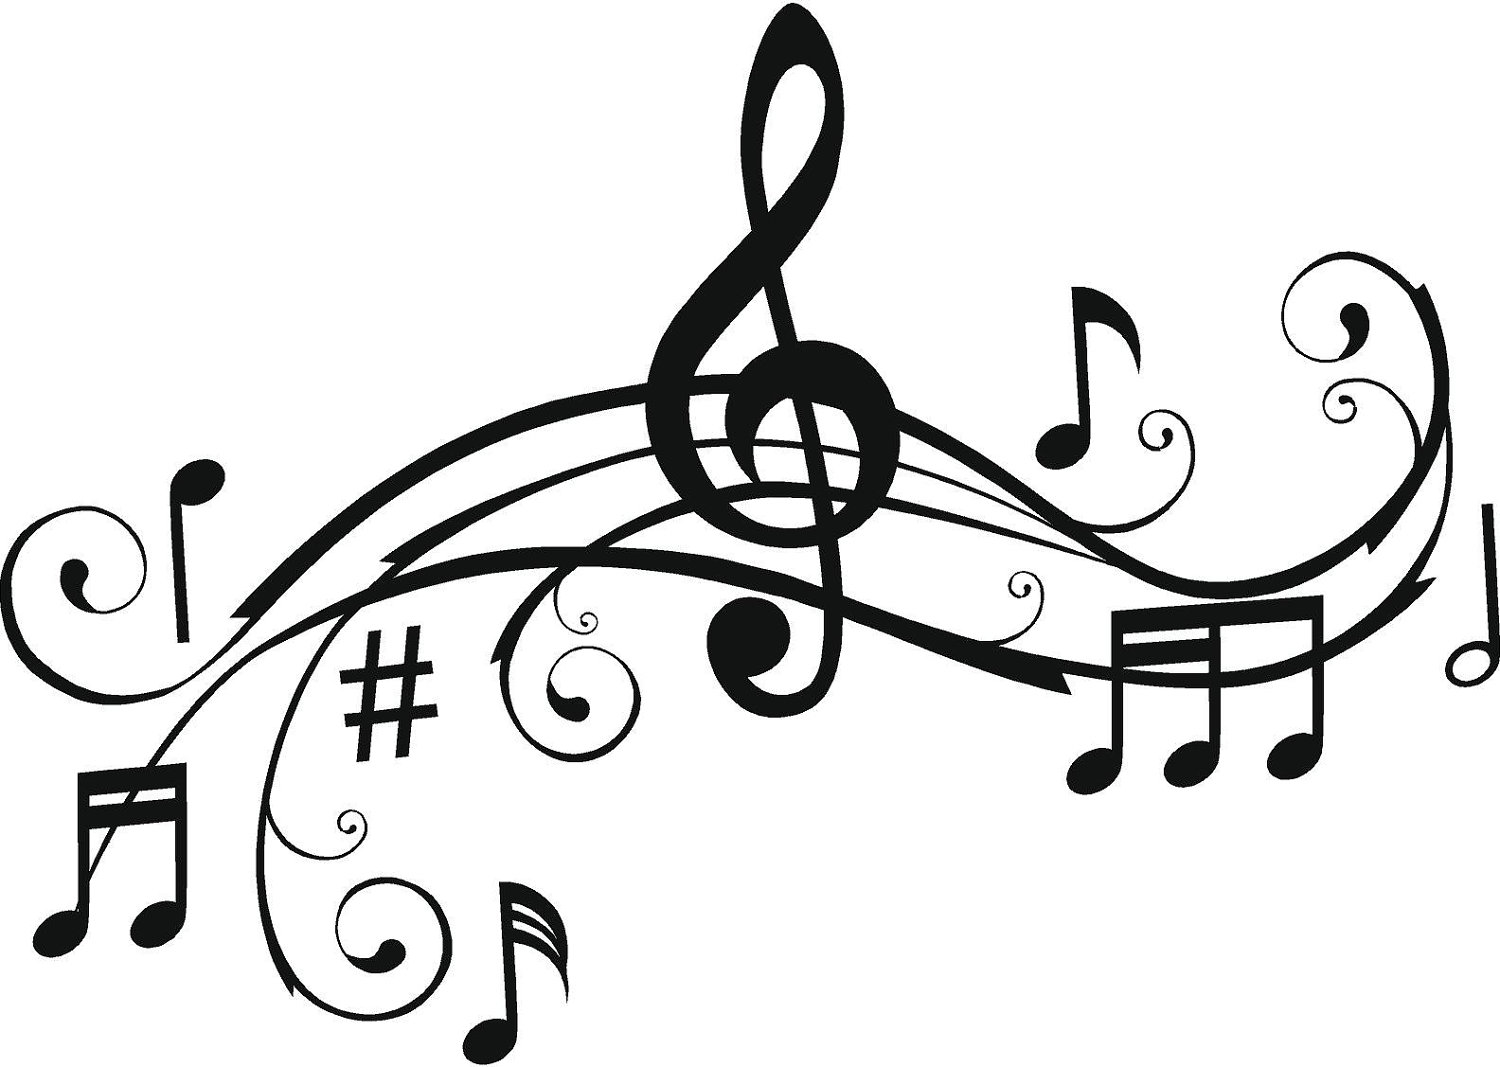 It is an image of Eloquent Musical Coloring Page